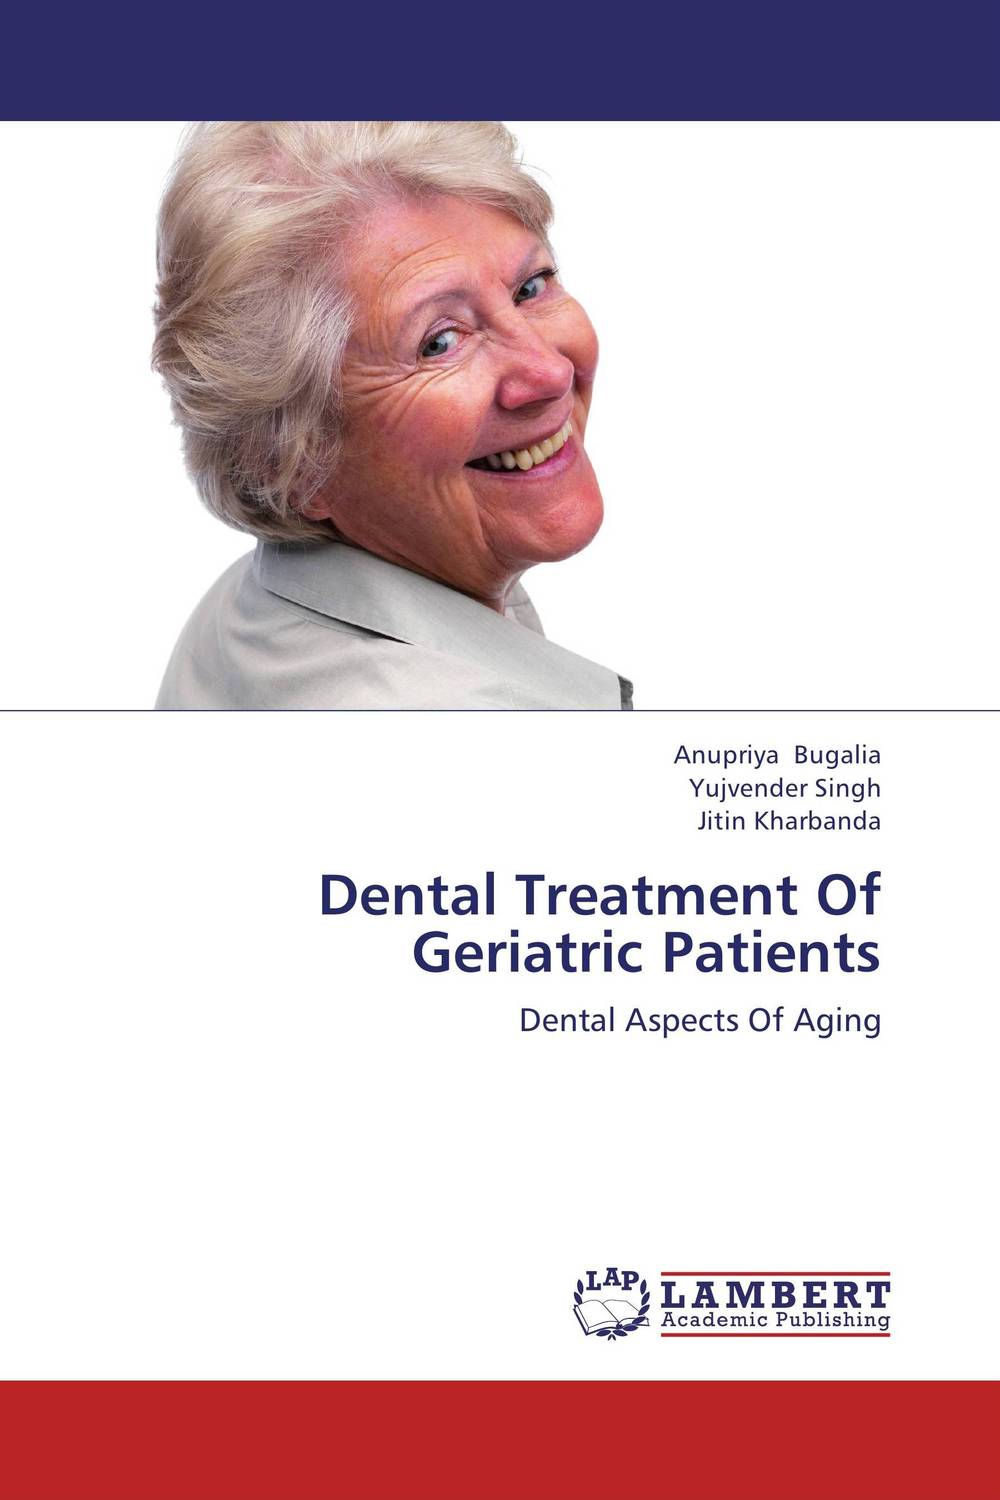 Dental Treatment Of Geriatric Patients